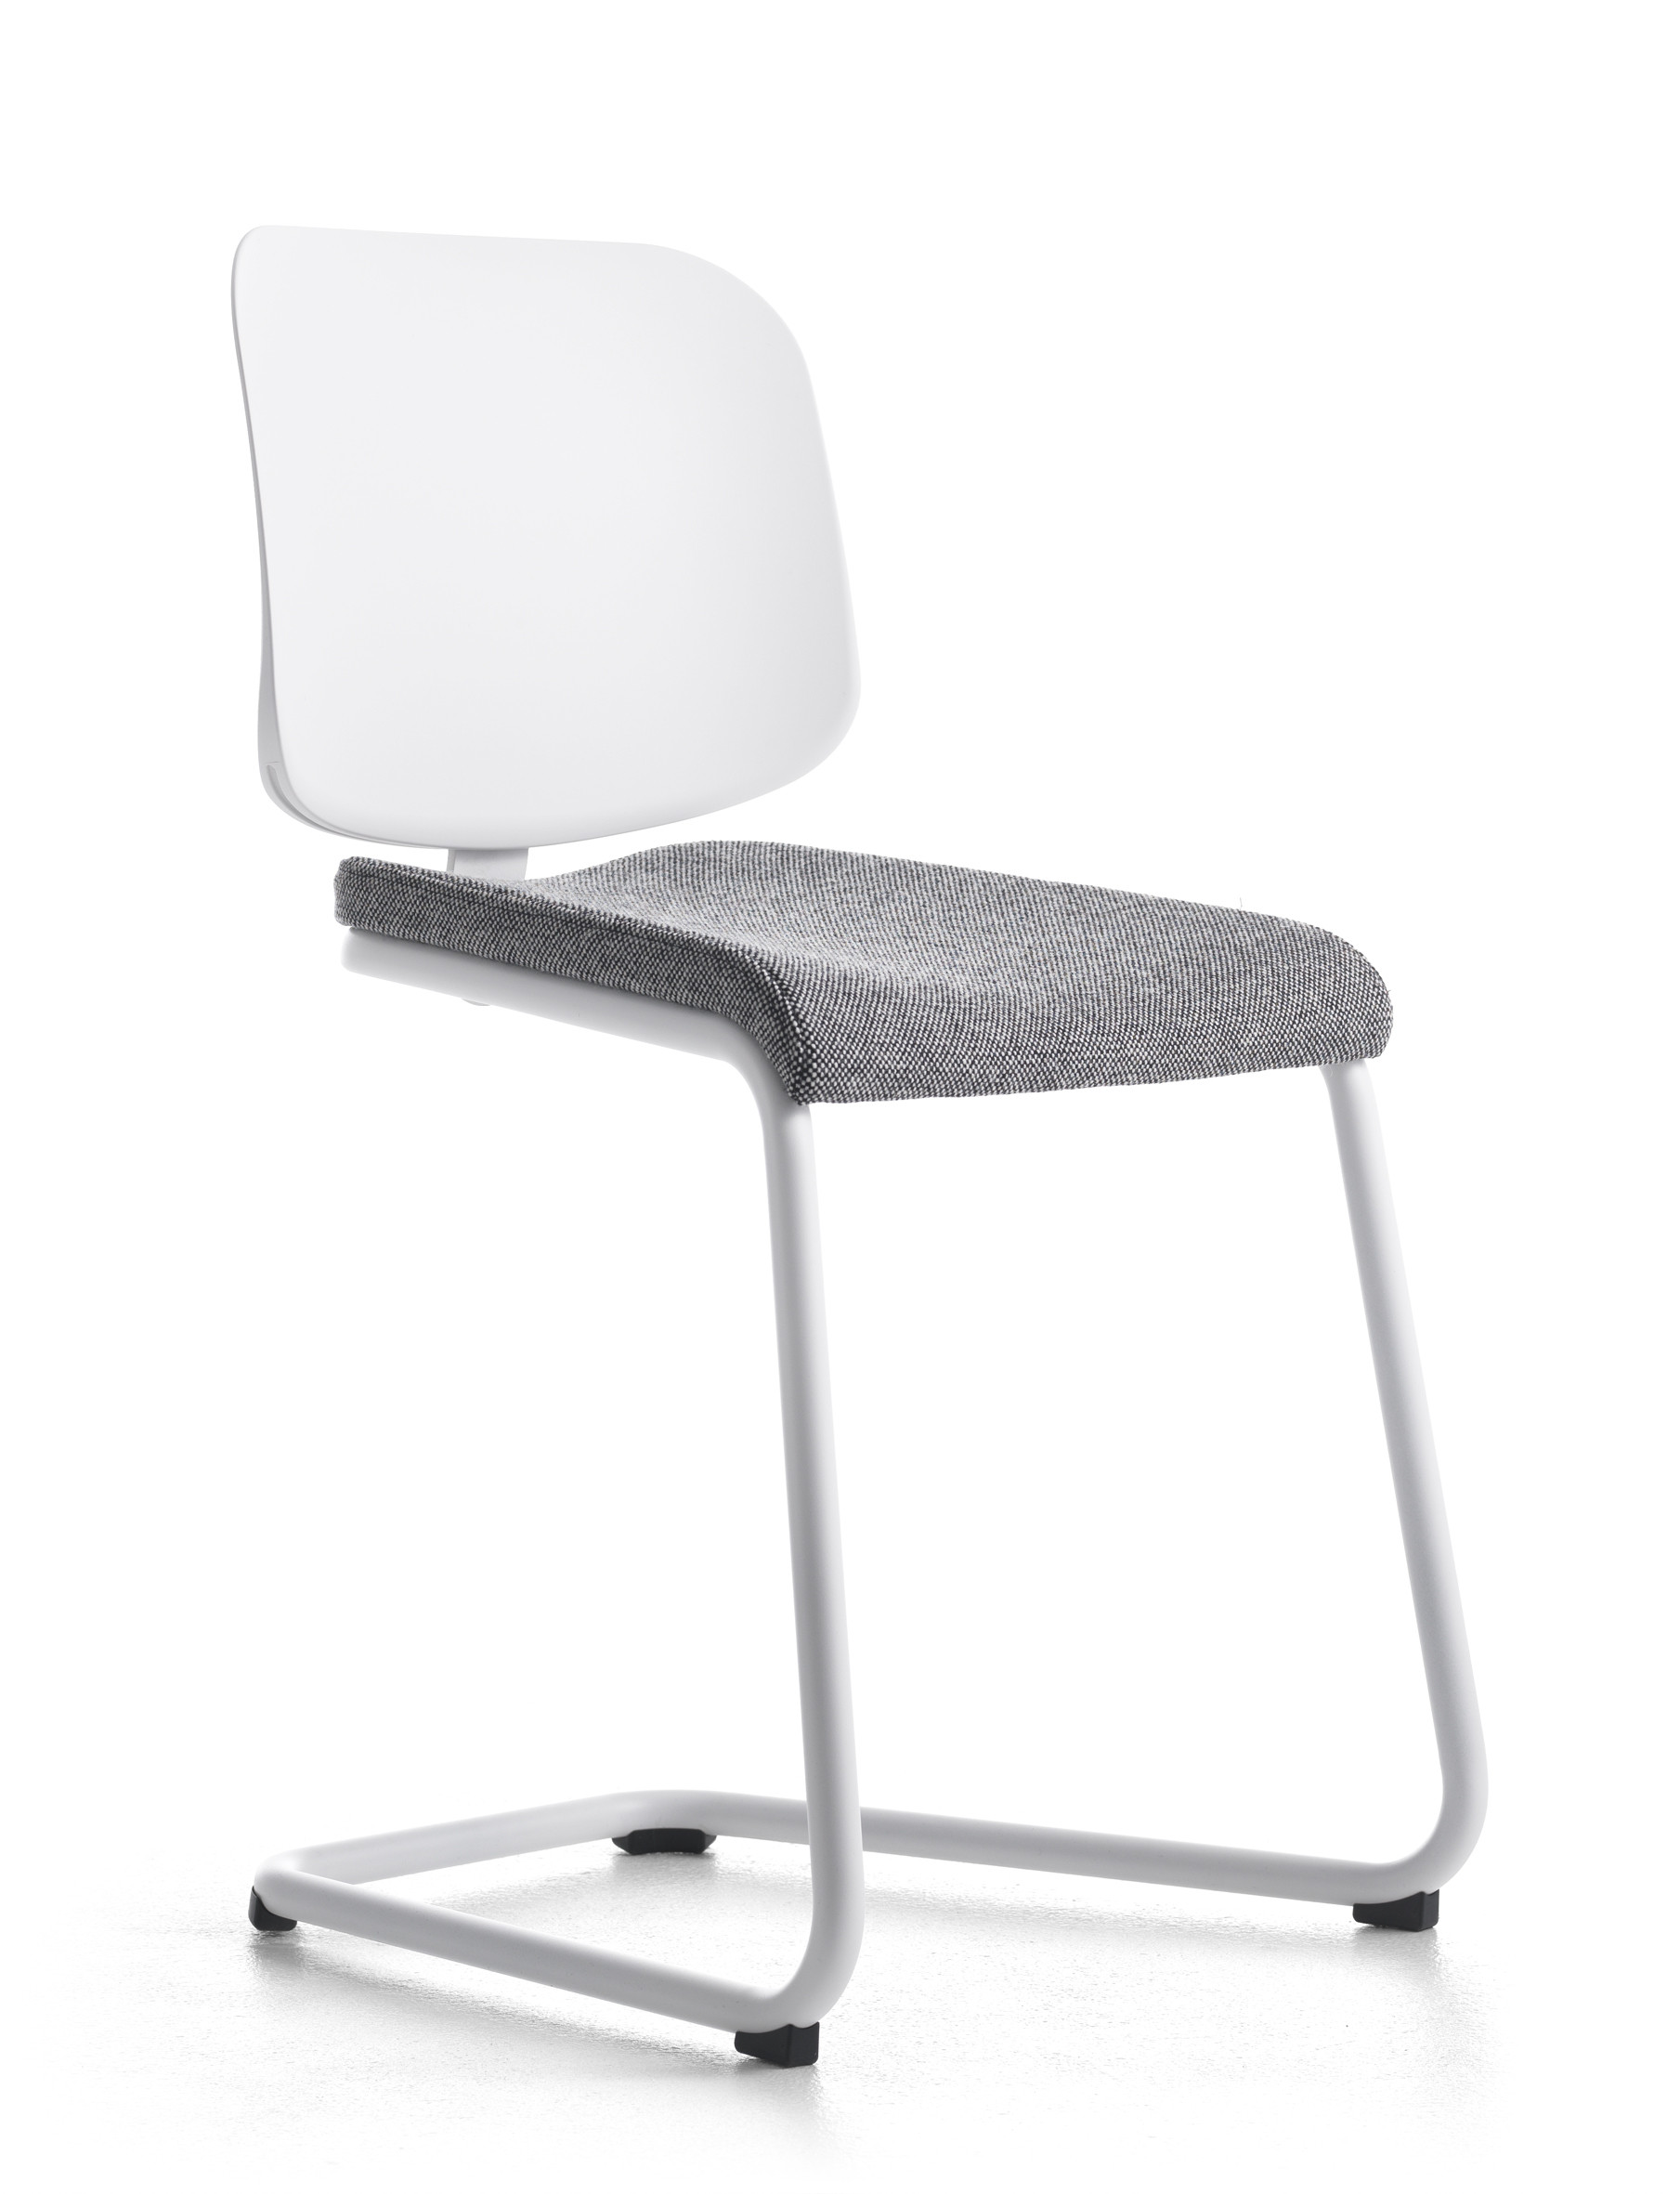 add chairs armchairs lammhults